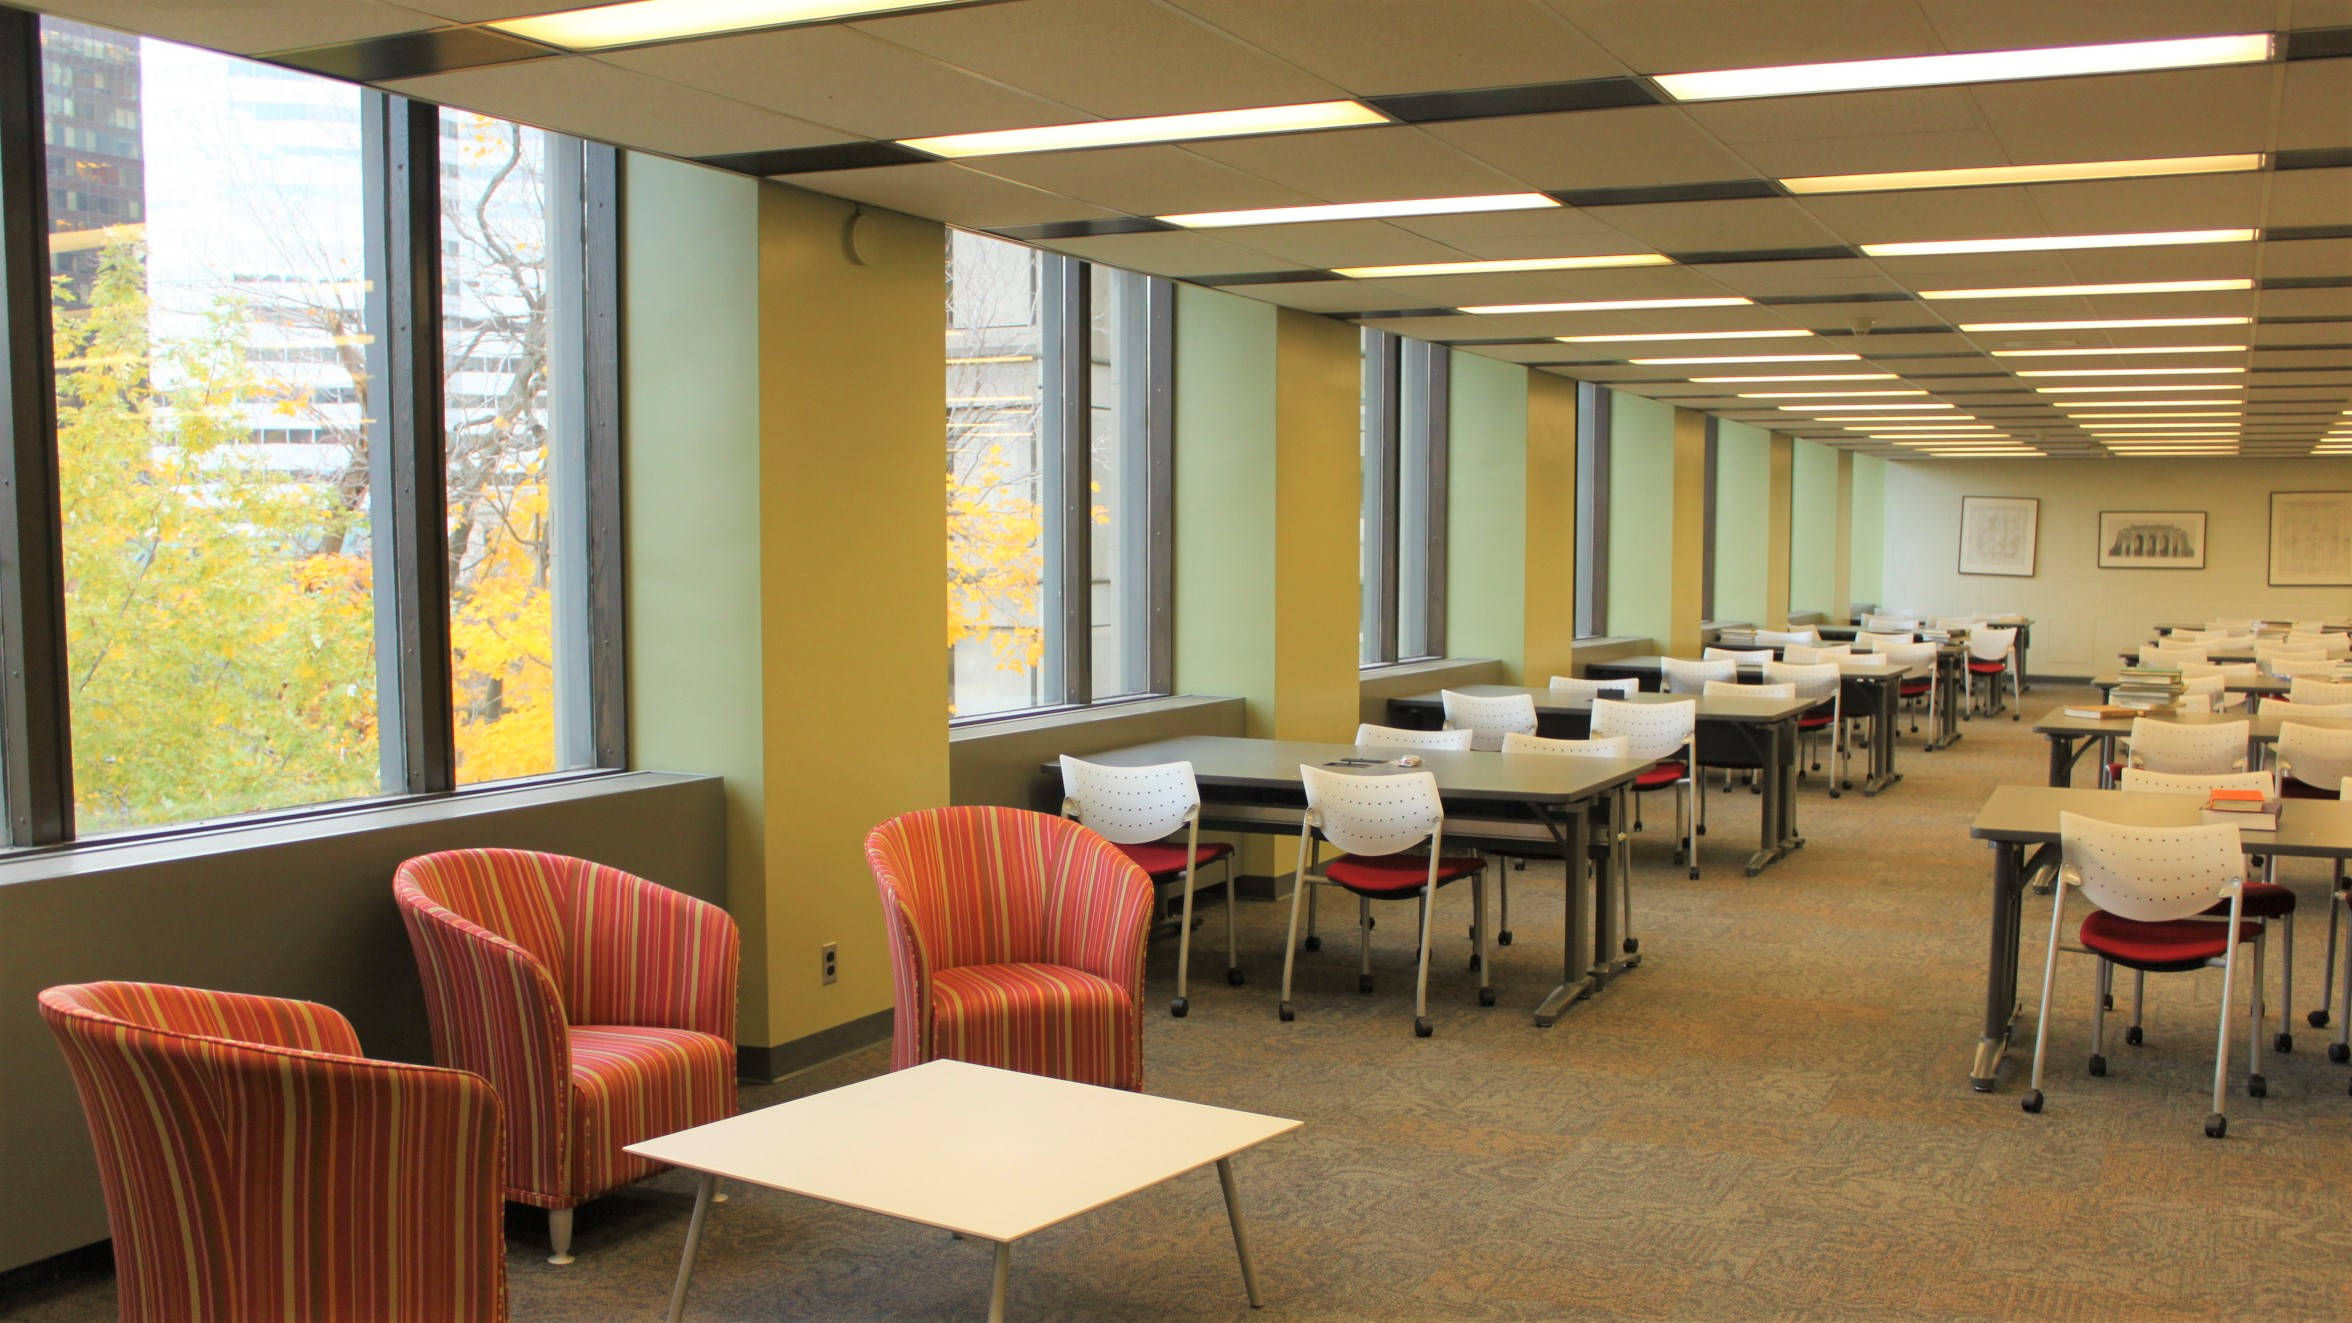 Blackader-Lauterman study space, Redpath Library Building, 3rd floor. Photo: Merika Ramundo.